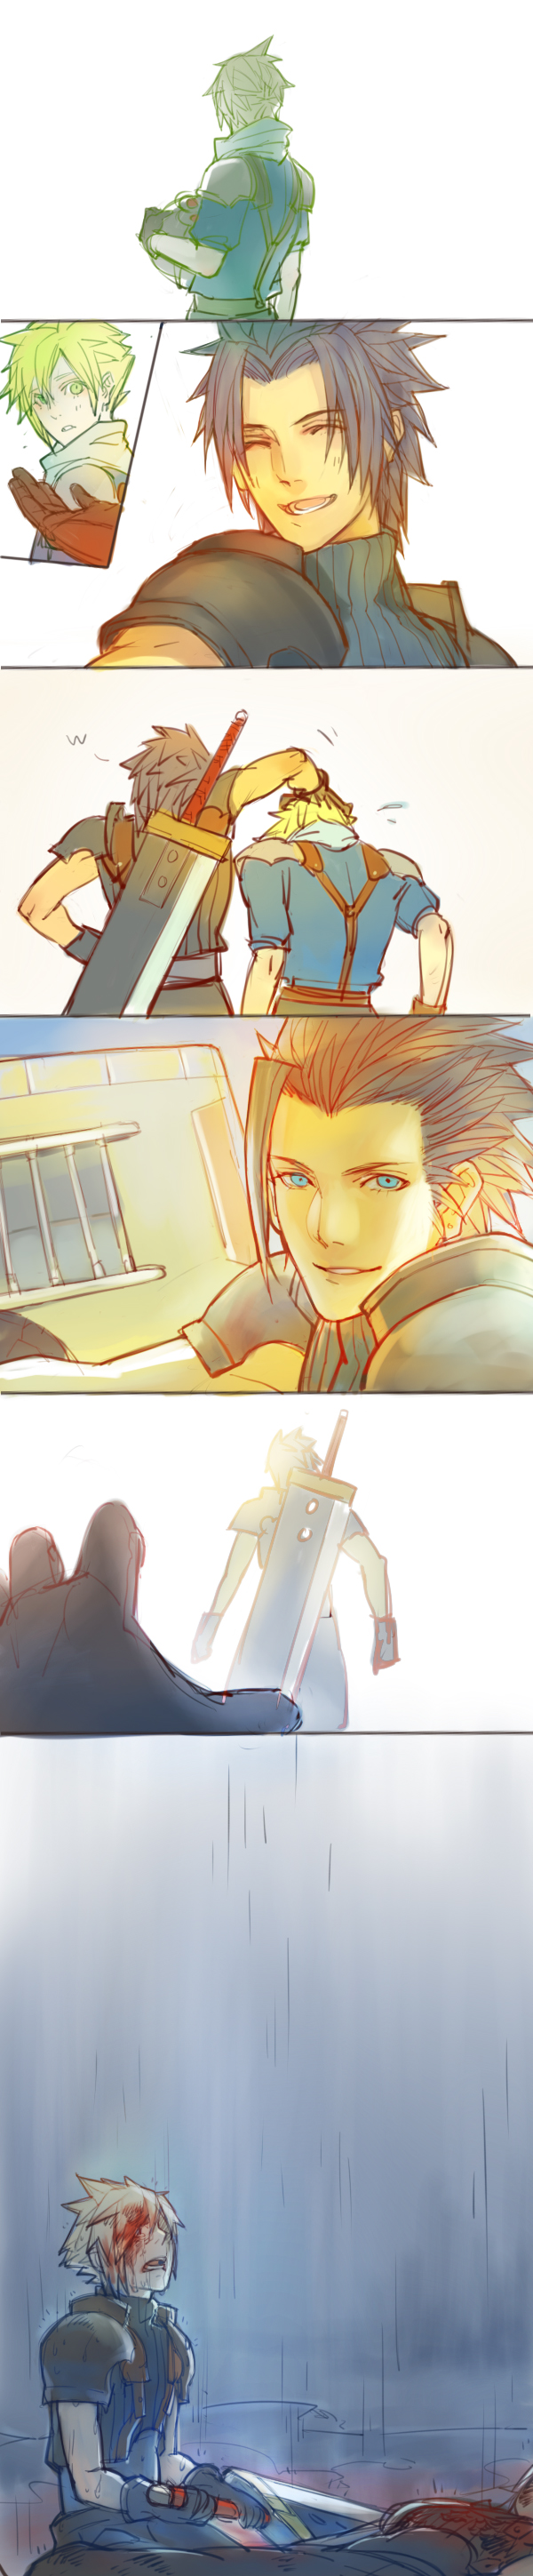 Tags: Anime, .Axis., Final Fantasy VII, Zack Fair, Cloud Strife, Fanart From Pixiv, Fanart, Pixiv